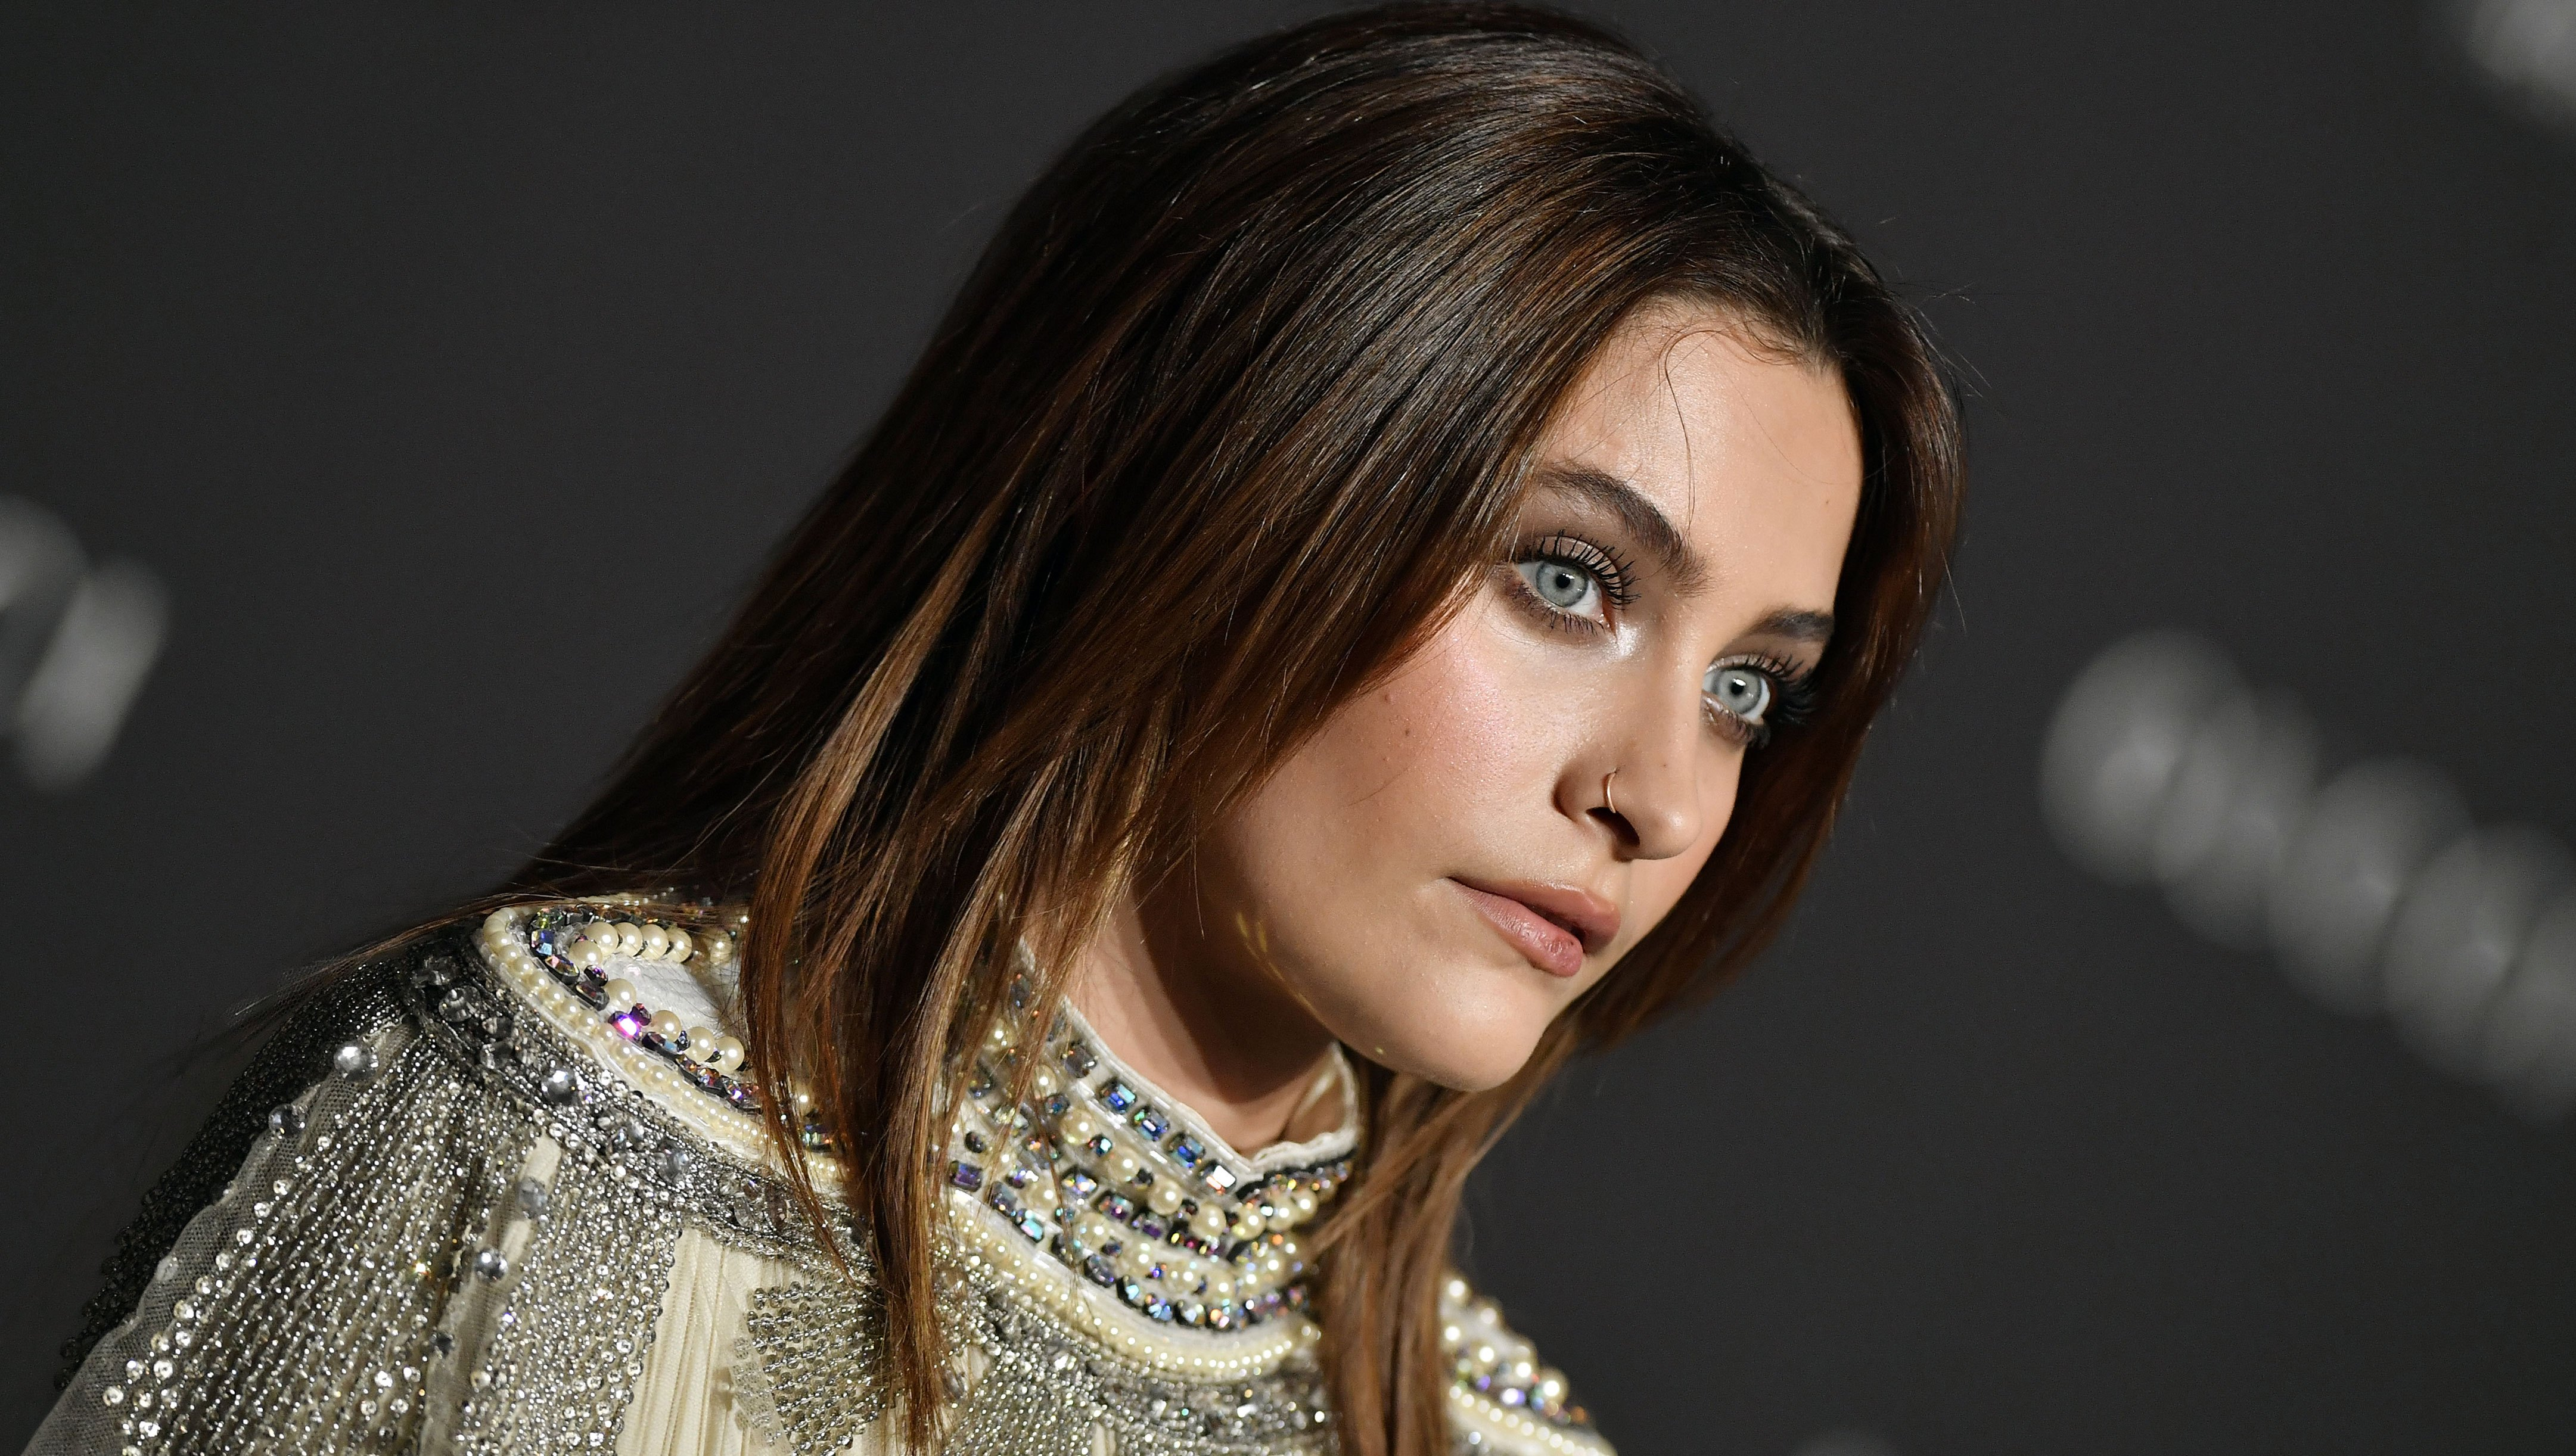 Paris Jackson Hospitalized After Suicide Attempt